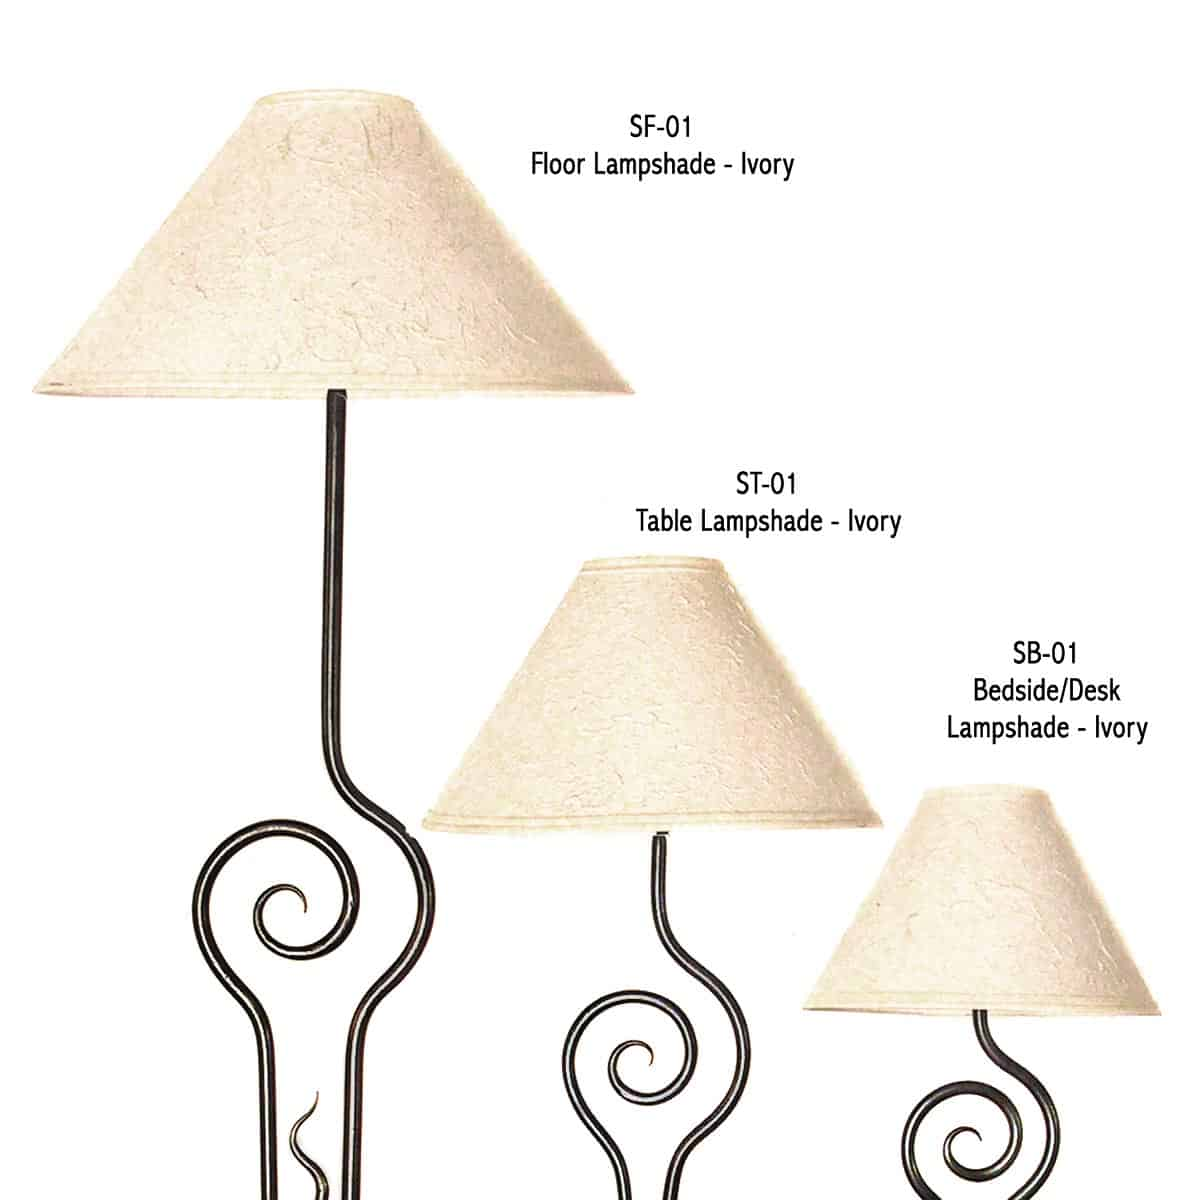 SF-01 Floor Lampshade – Ivory